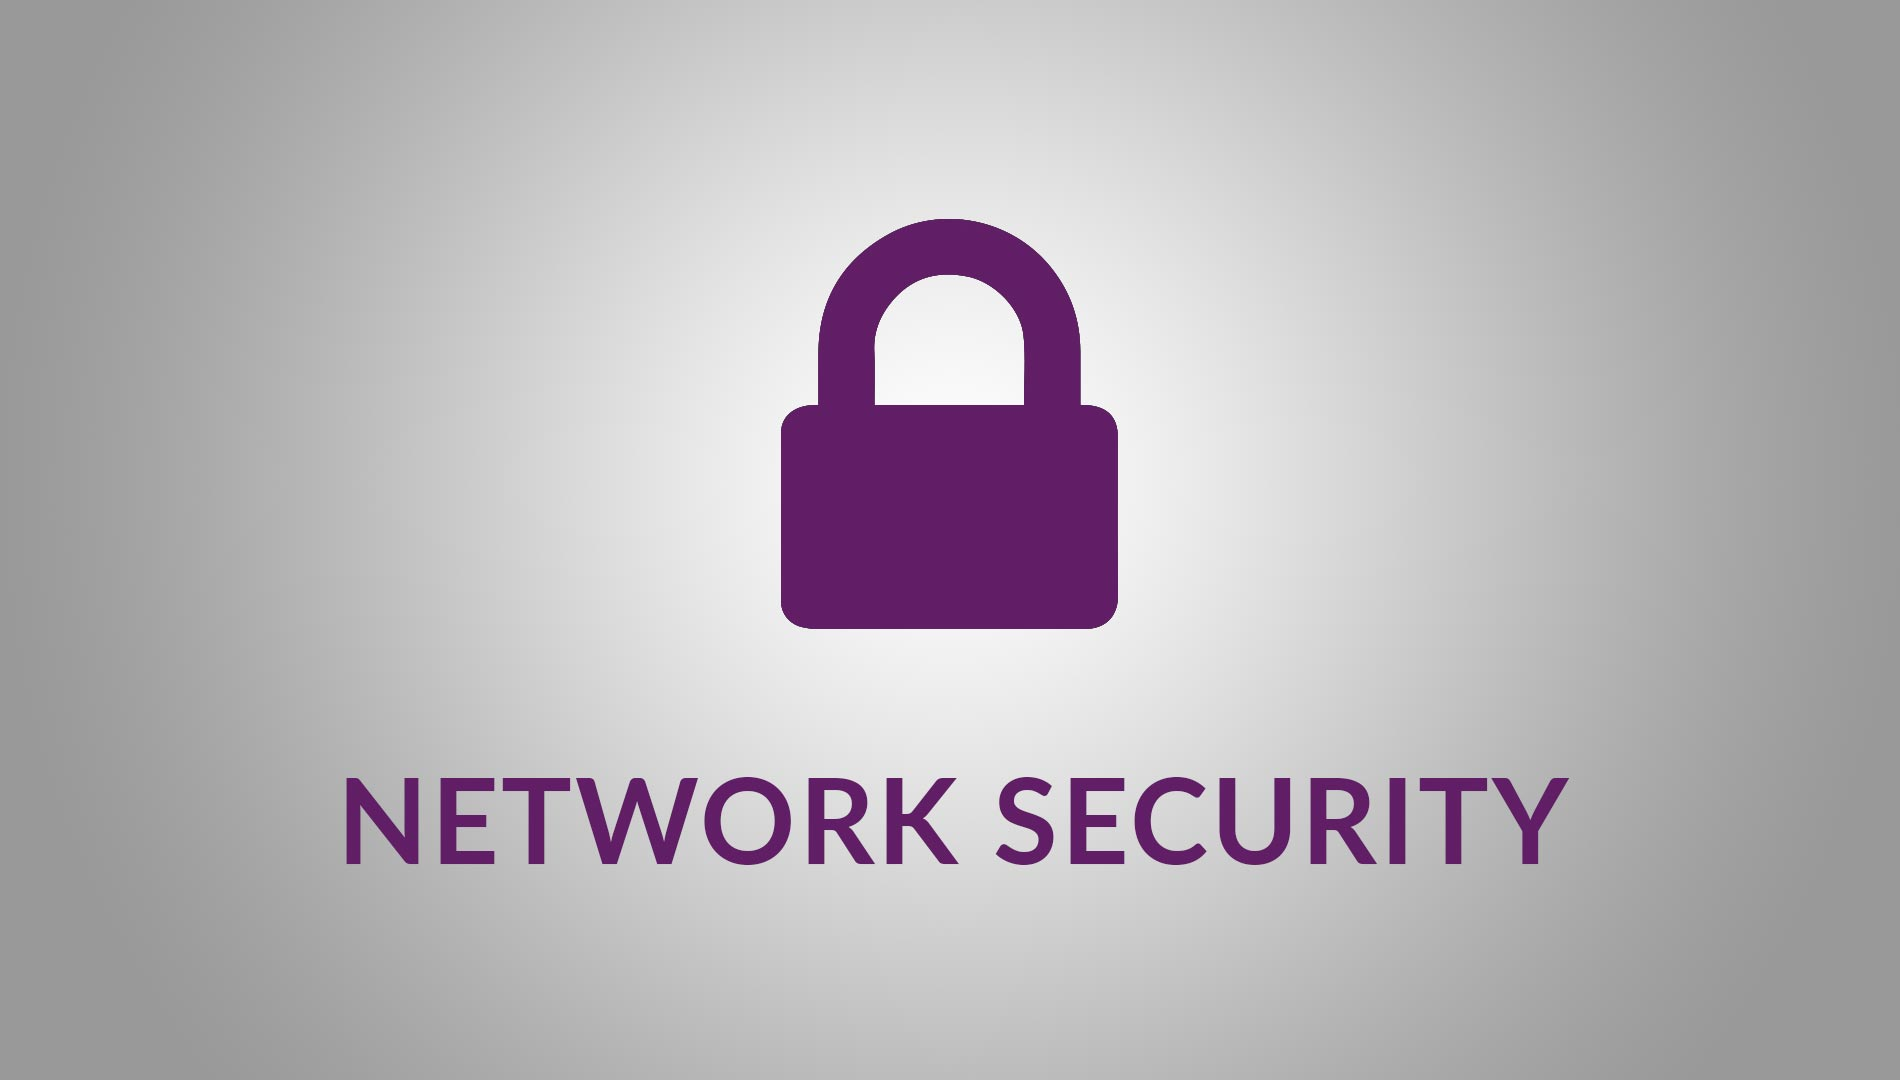 Enable policies that guarantee a secure network